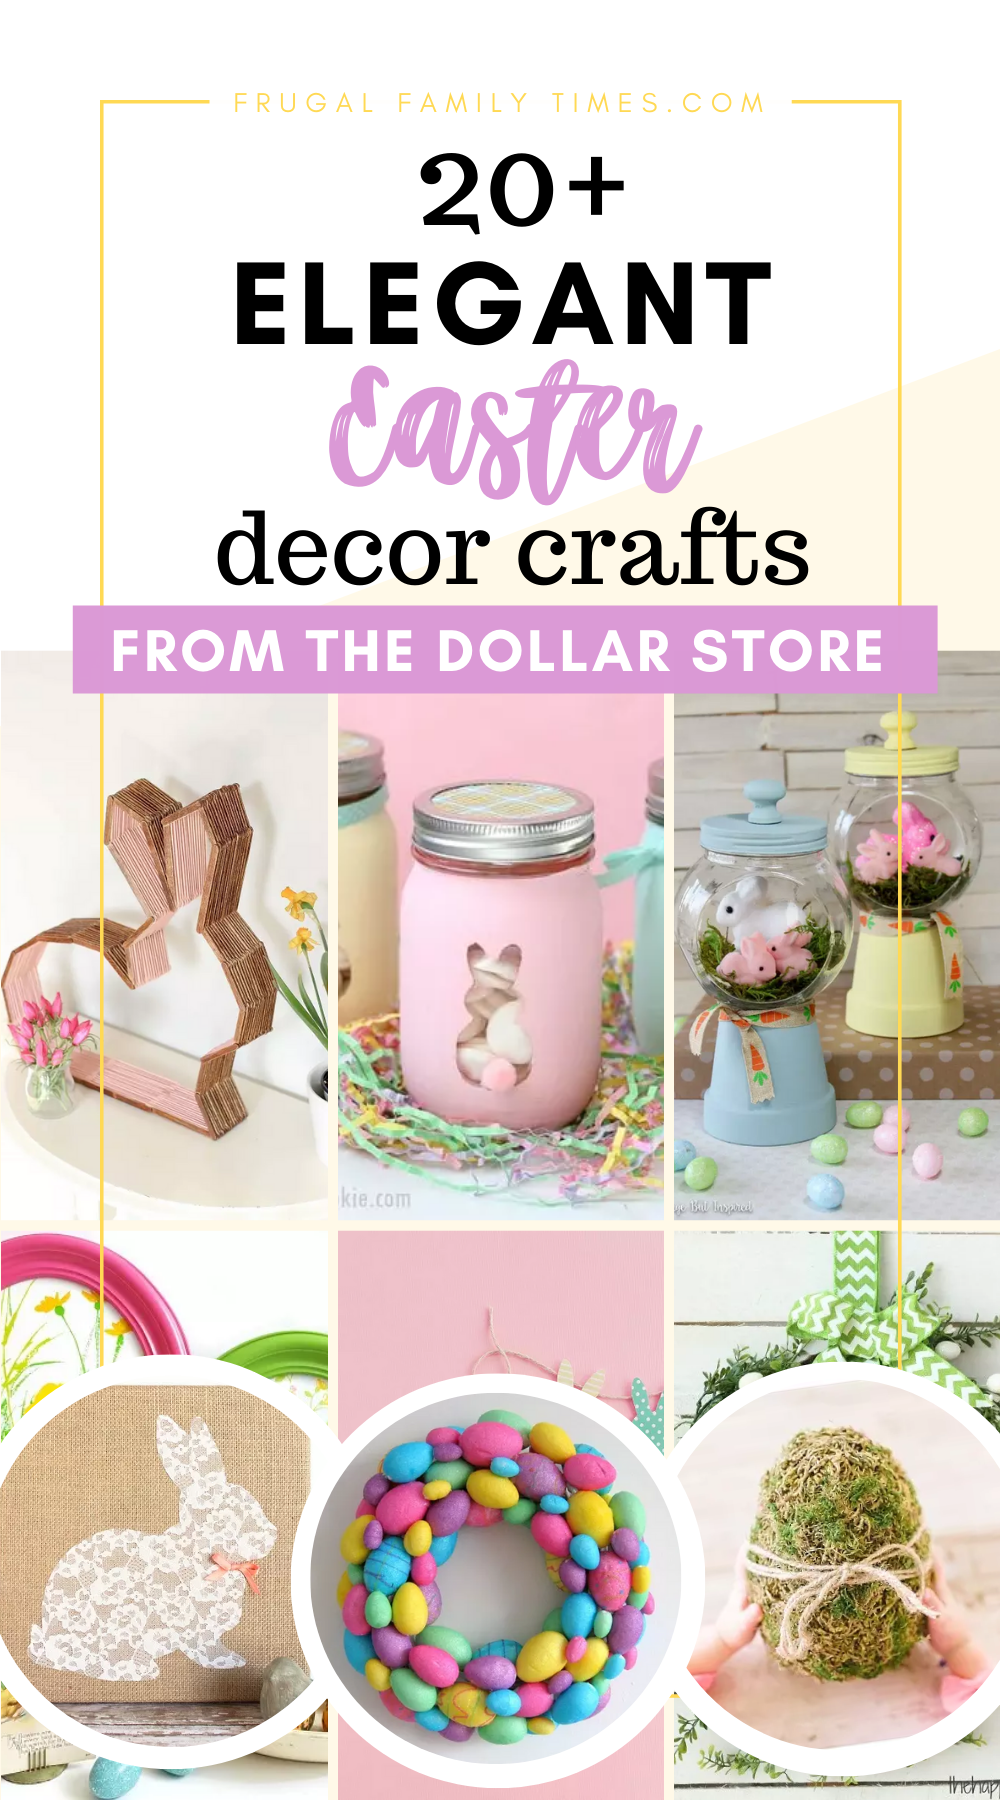 20 Elegant Easter Decor Crafts From The Dollar Store In 2021 Easter Decorations Elegant Homemade Holiday Gifts Easter Crafts